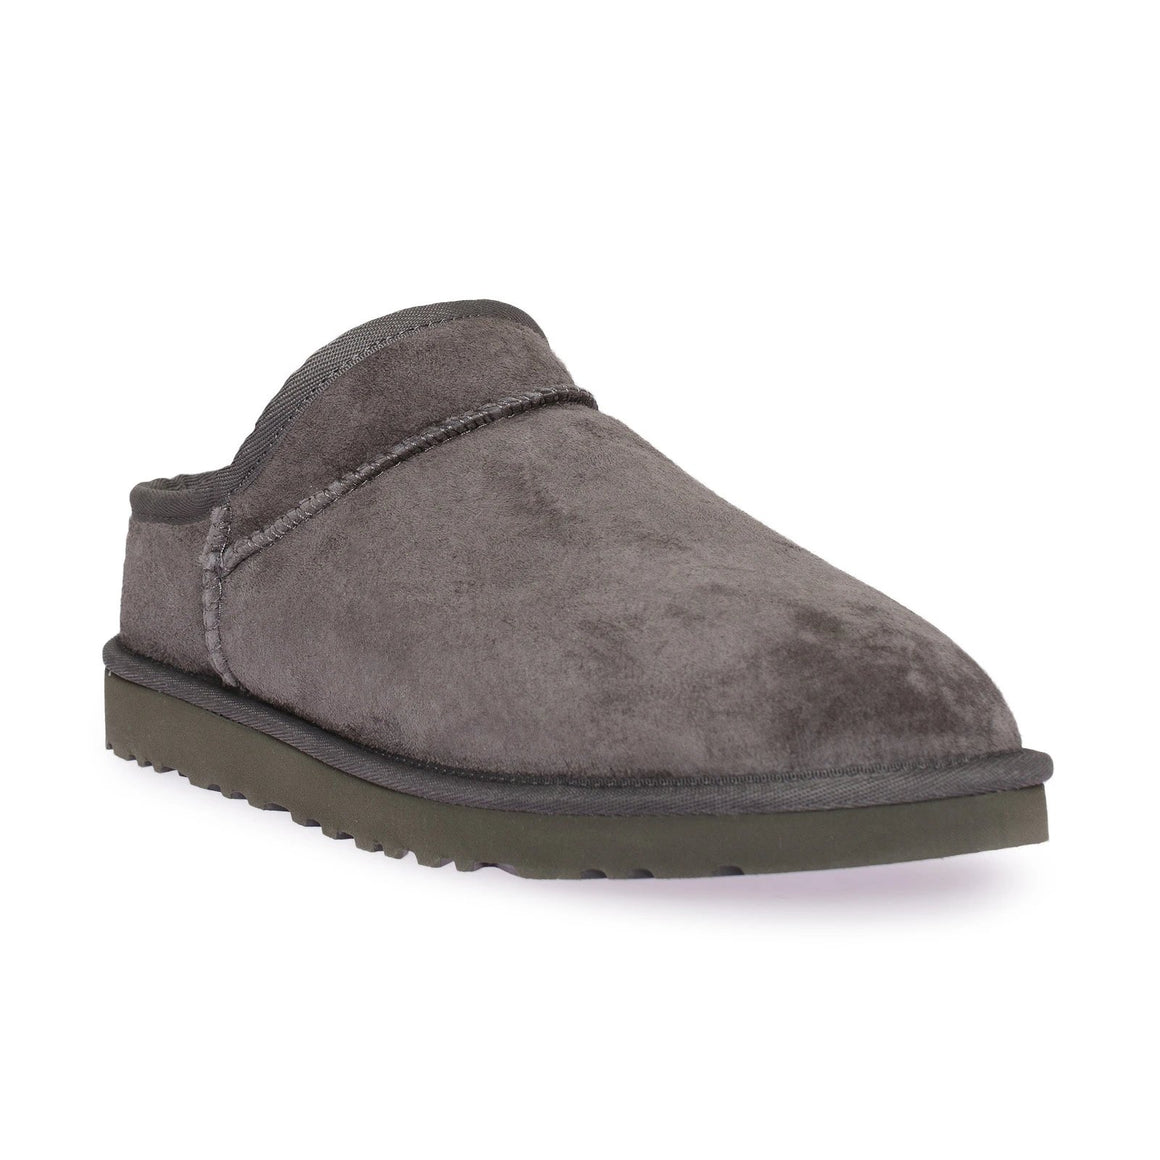 UGG Classic Slipper Gray Slippers - Women's